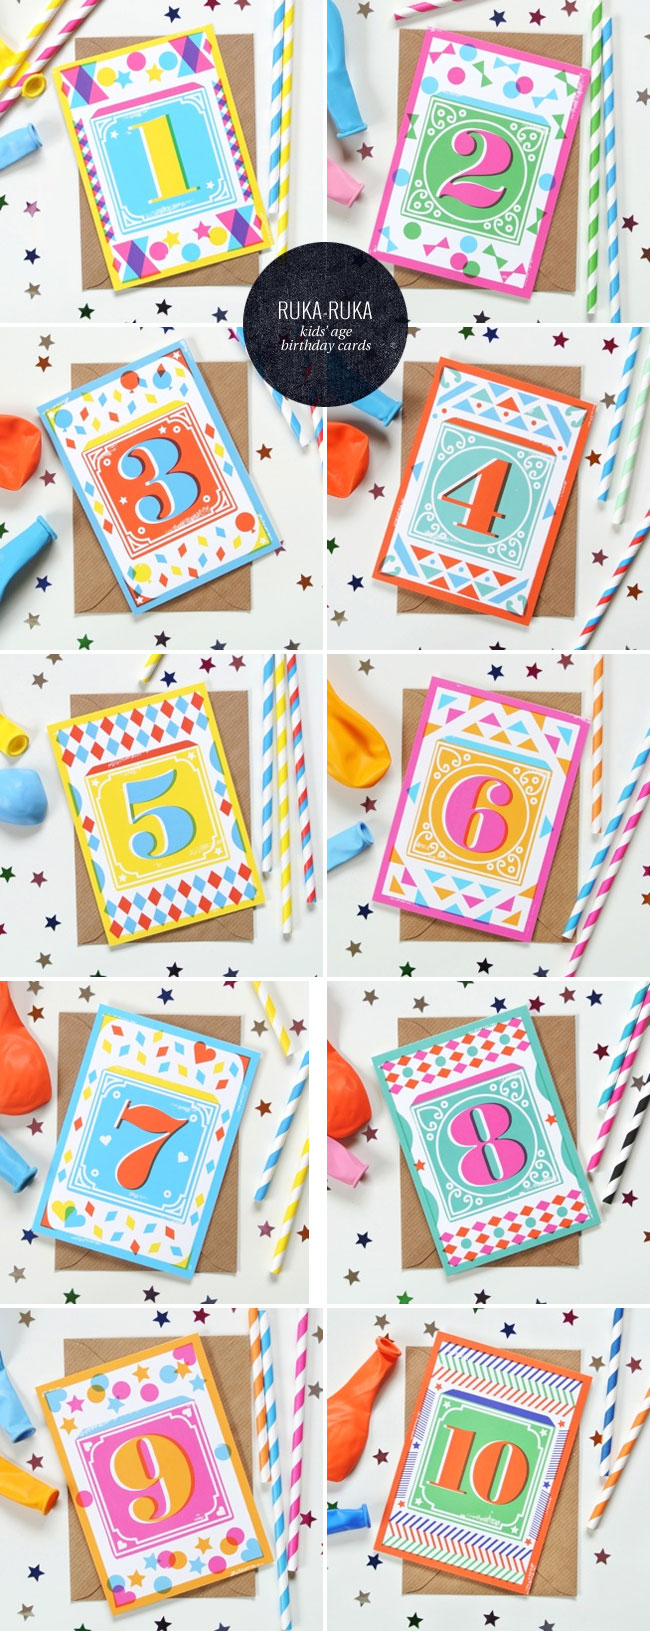 Kids' Age Birthday Cards by Ruka-Ruka